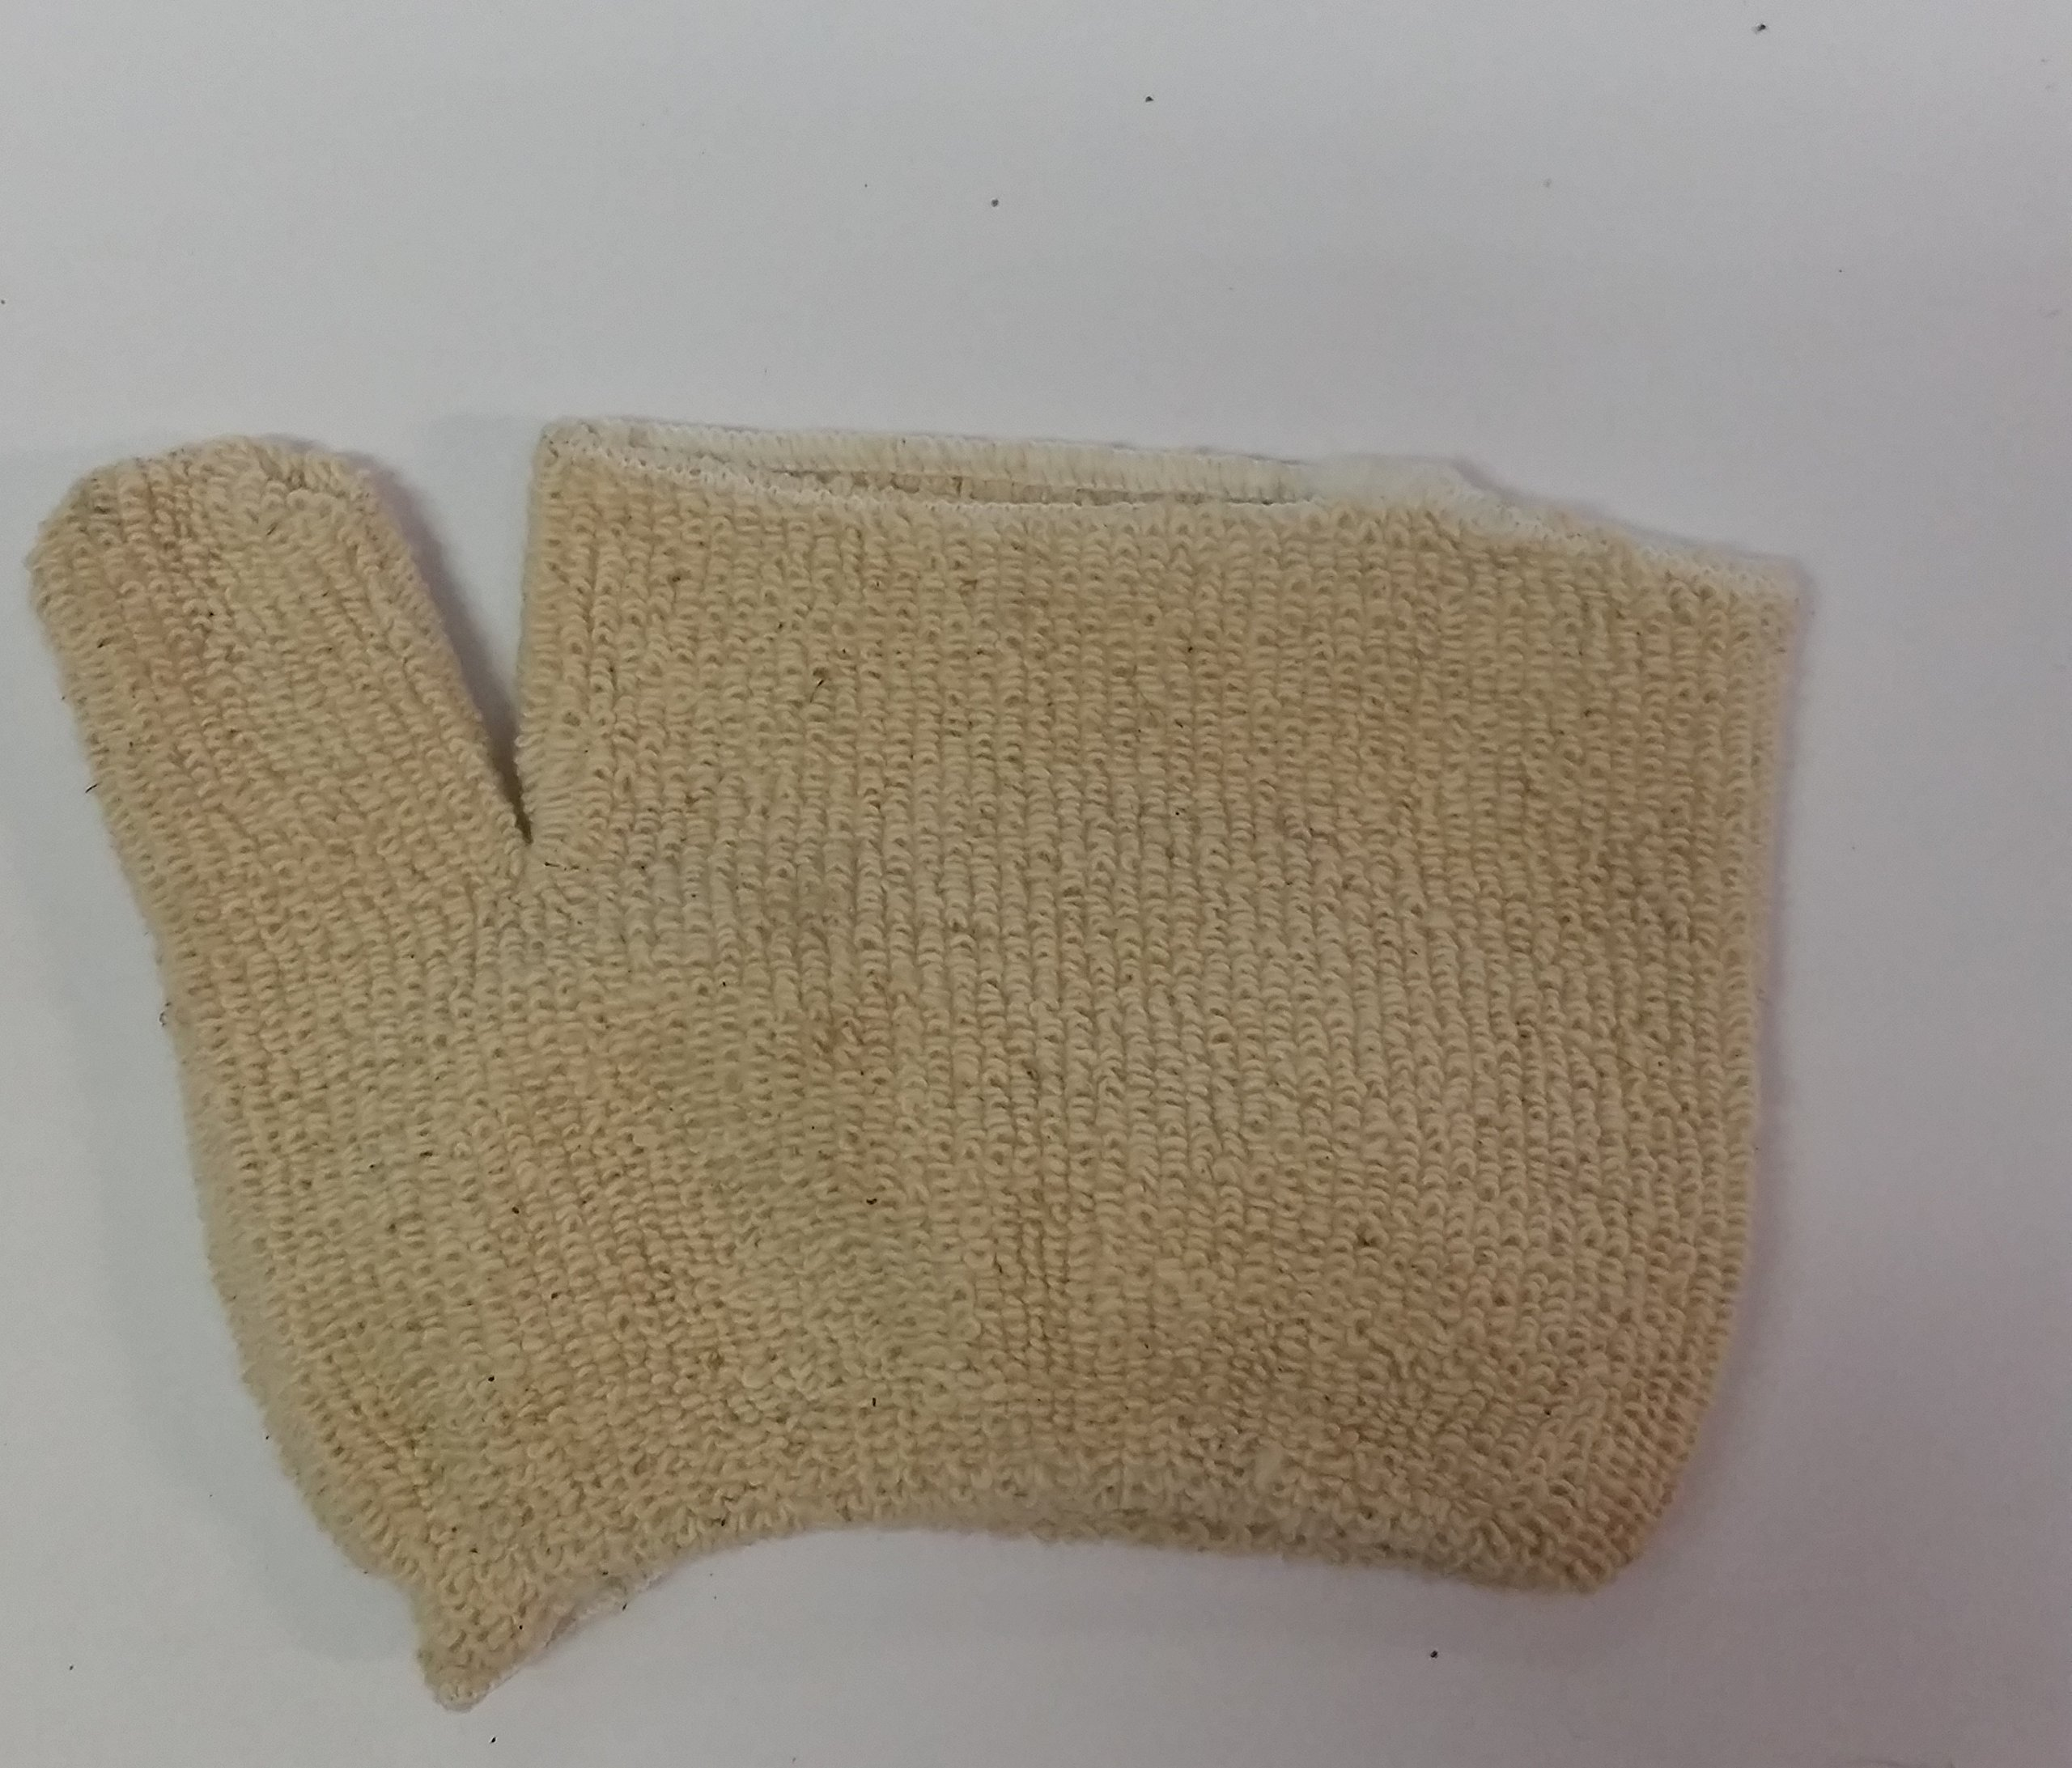 24-Oven Glove Heavy Teri-Loop-Cut elastic wrist Approximately 450°F protection by Raja Industries